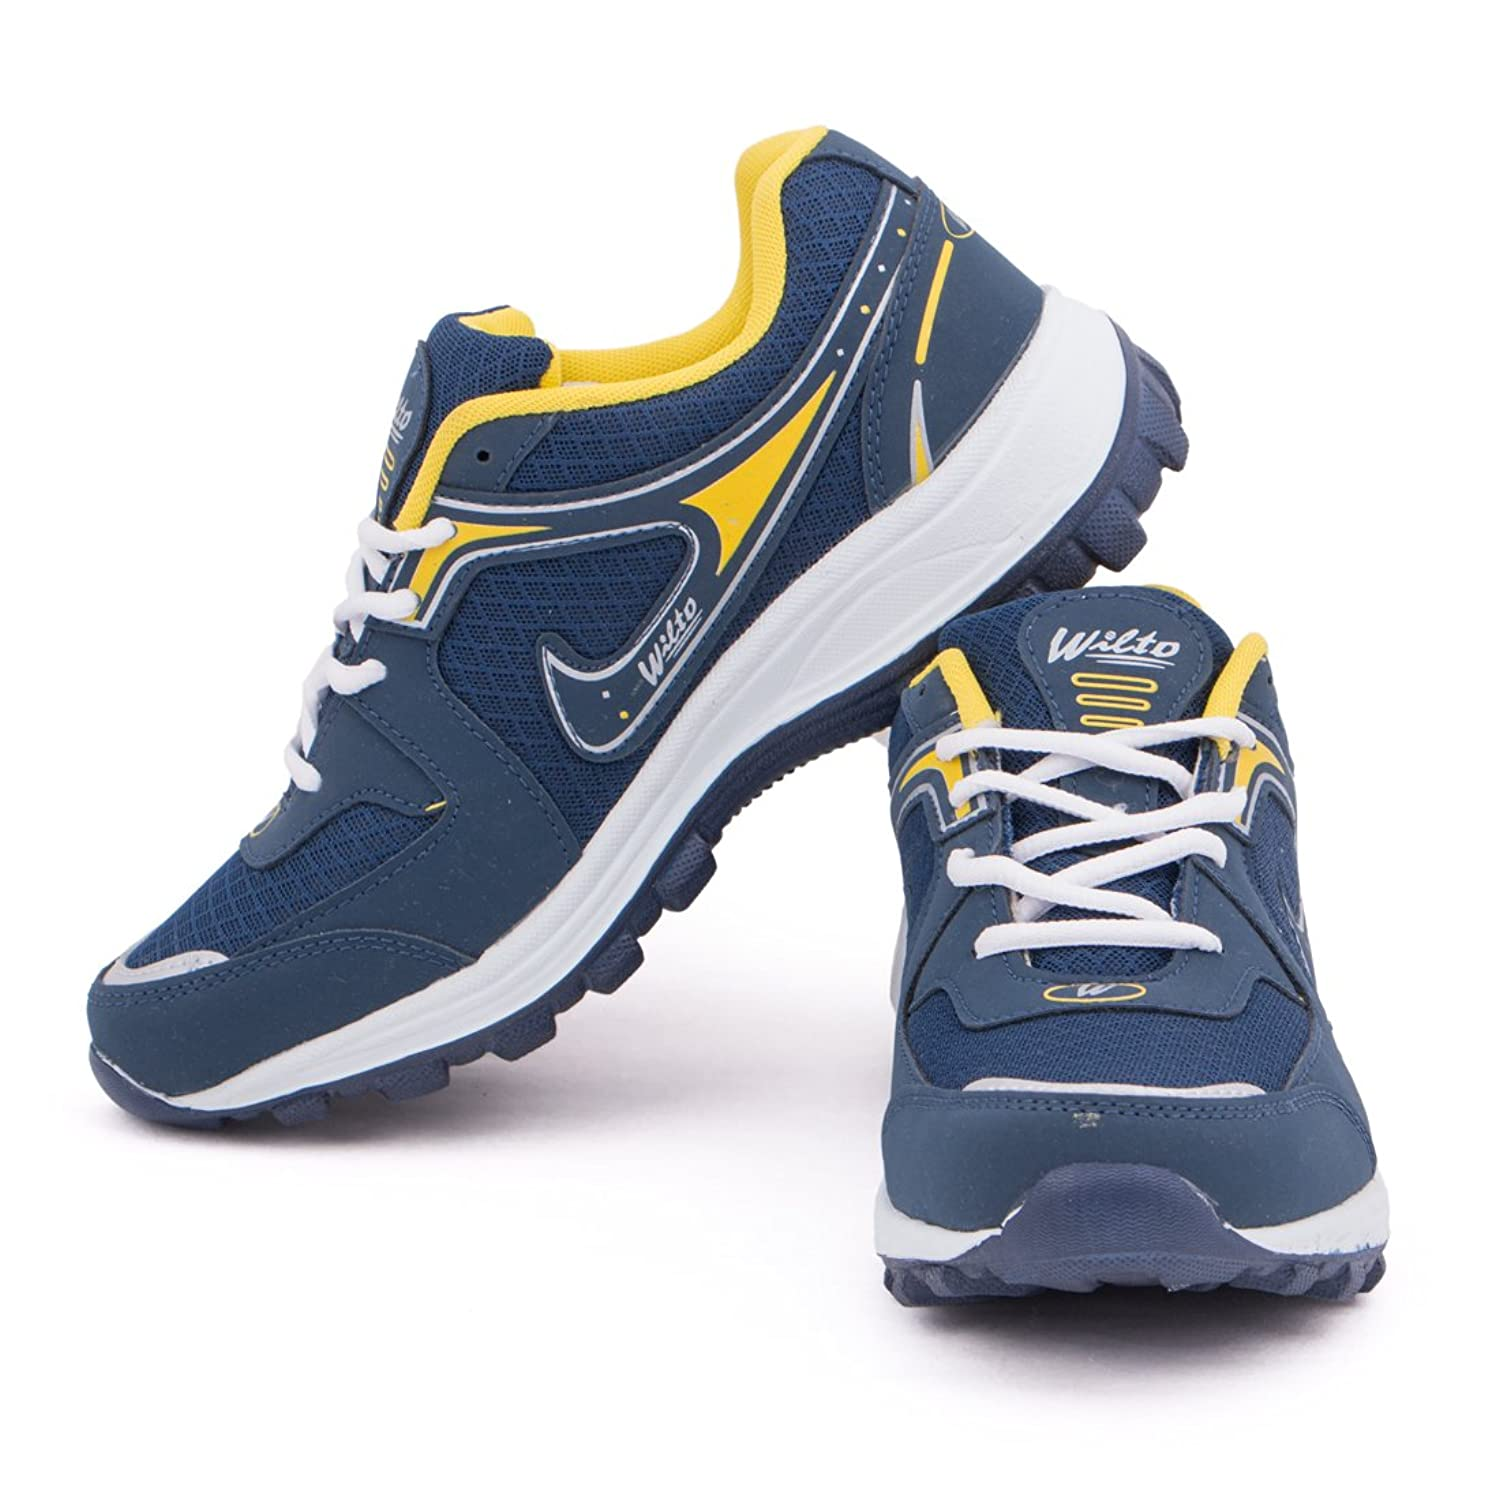 6f1c4adee6fa Buy best running shoes for men in india   Up to OFF70% Discounted